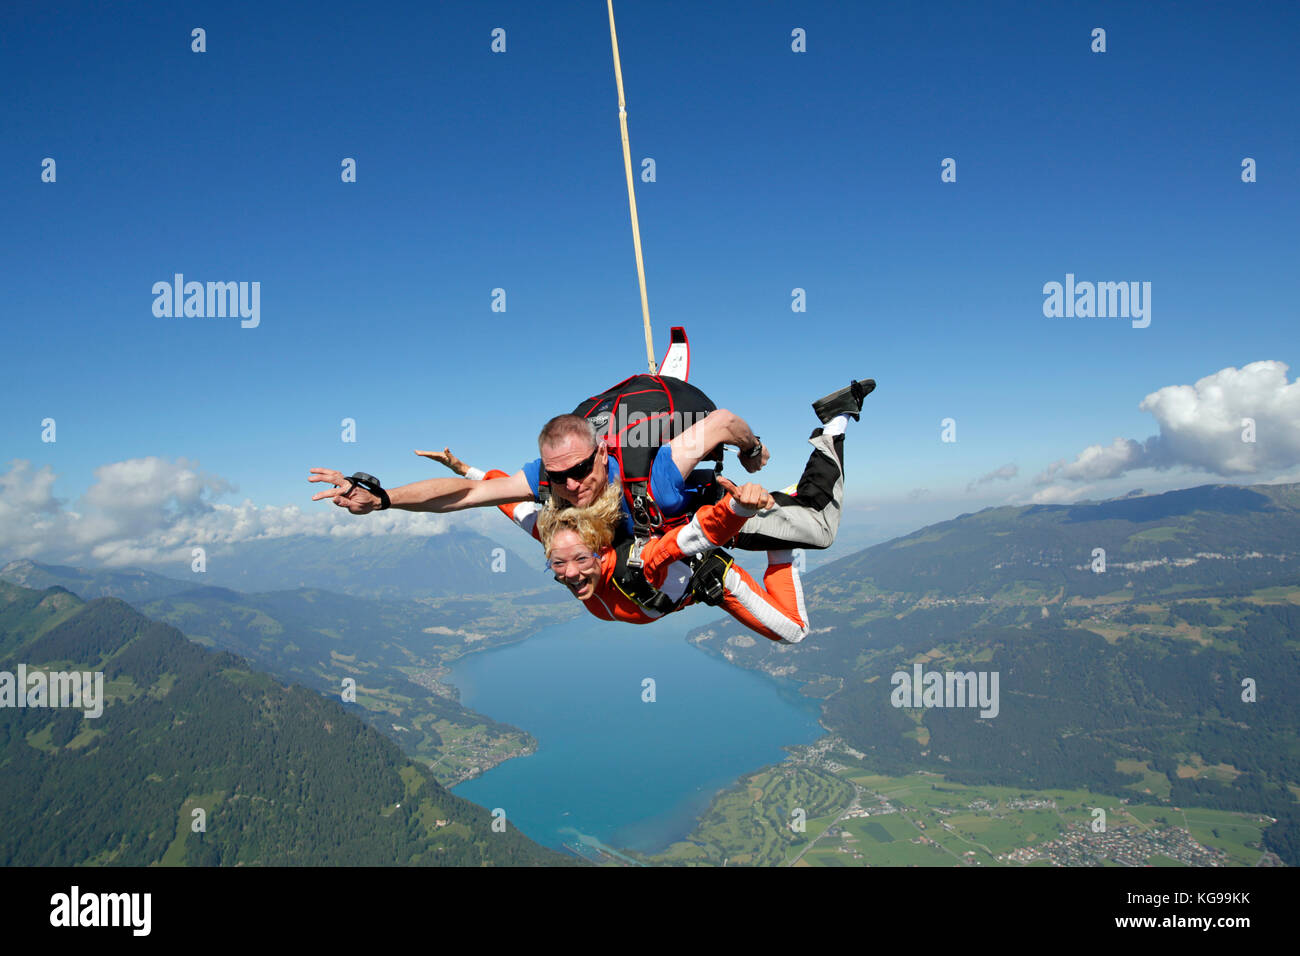 Free Fall Skydiving Stock Photos & Free Fall Skydiving Stock